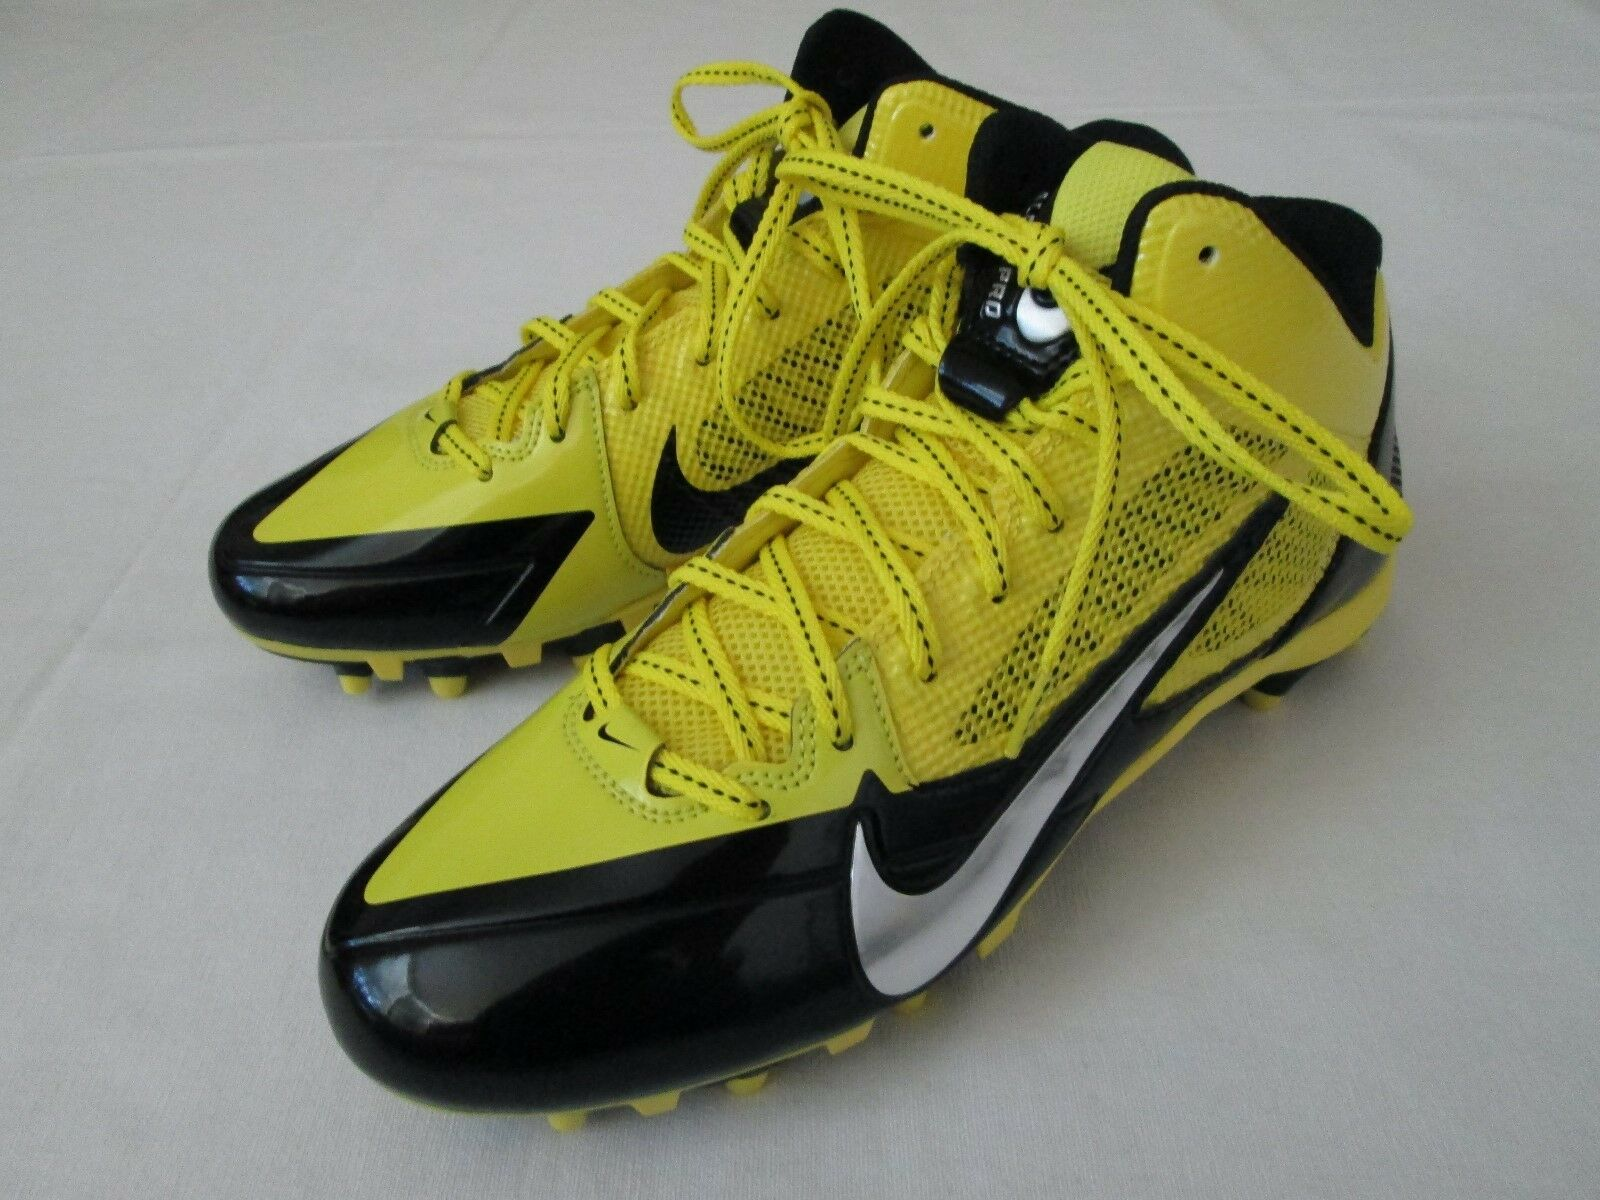 New Mens 10 Nike Flywire Alpha Pro 3 4 TD Football shoes, Yellow Black  94